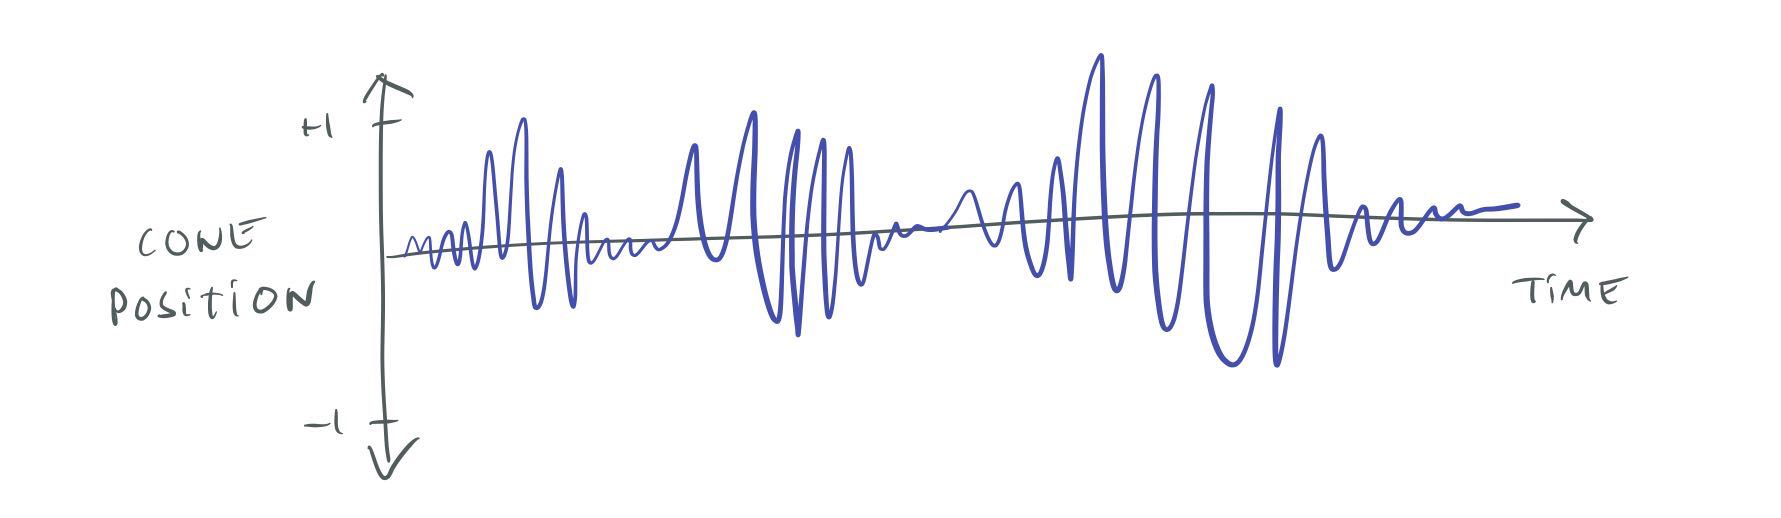 Cone position of a speaker over time.